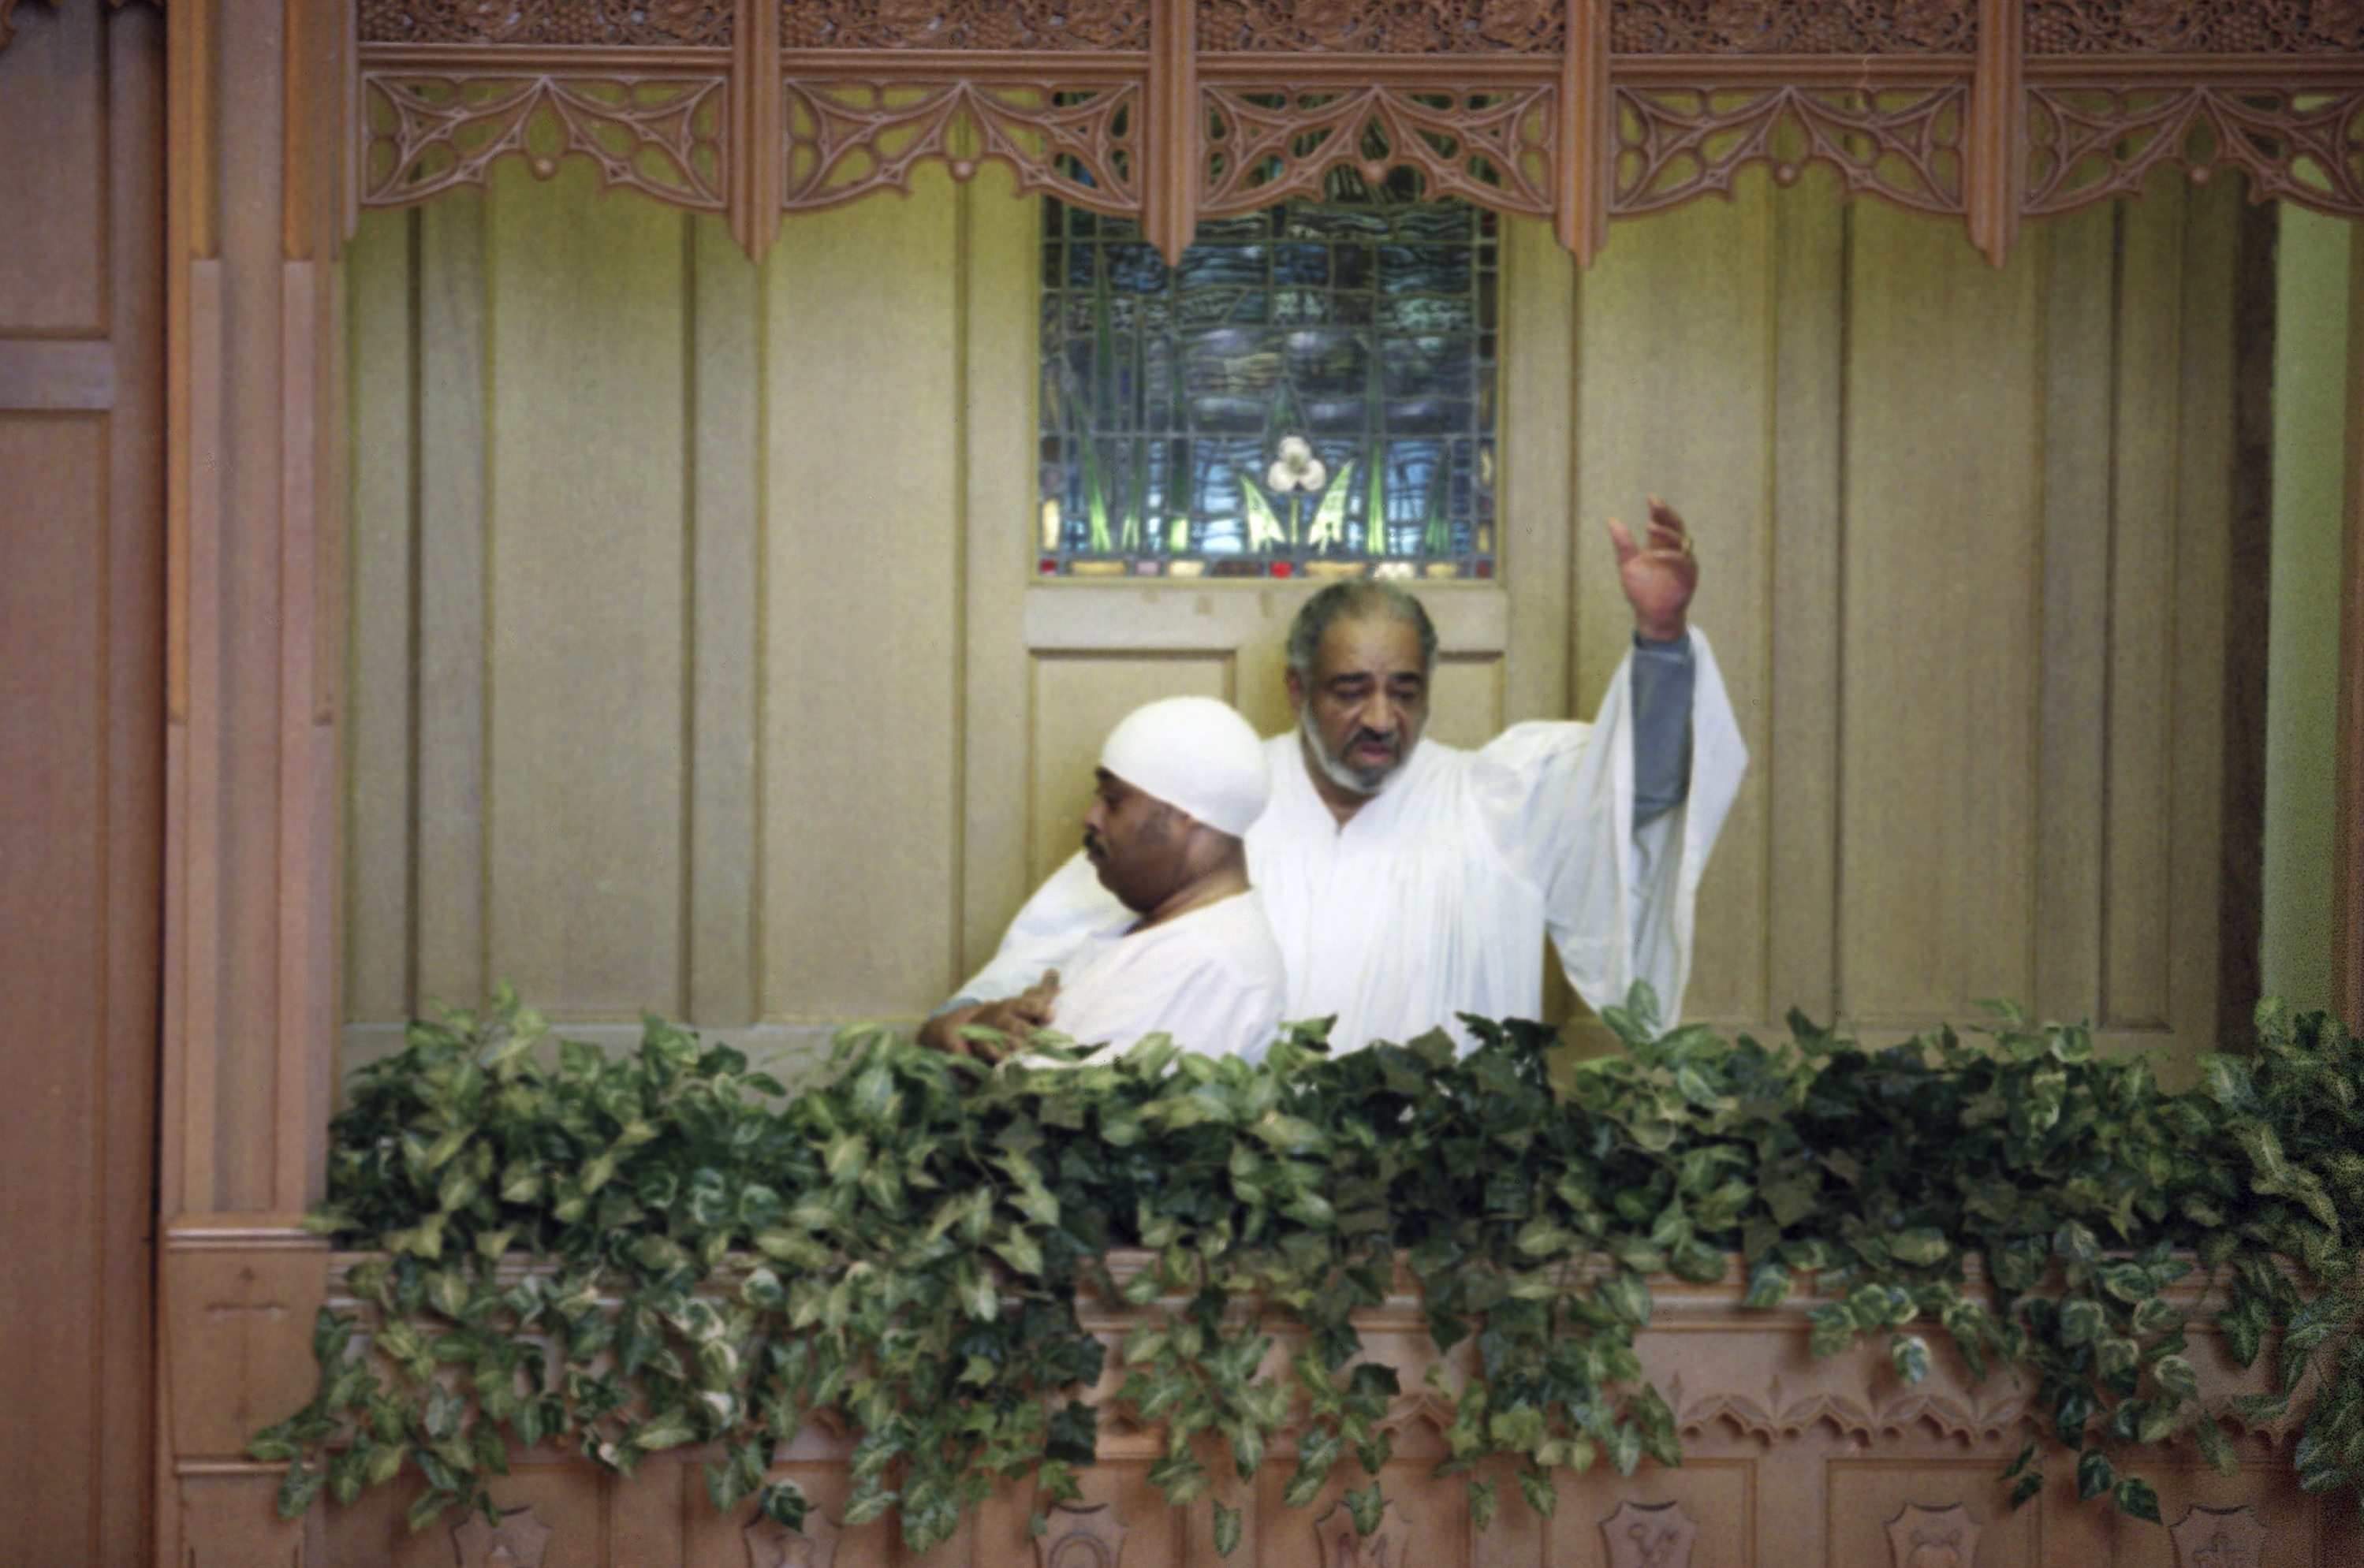 The Rev. William A. Jones, right, of the Bethany Baptist Church in Brooklyn re-baptizes the Rev. Al Sharpton in New York City on Feb. 6, 1994.